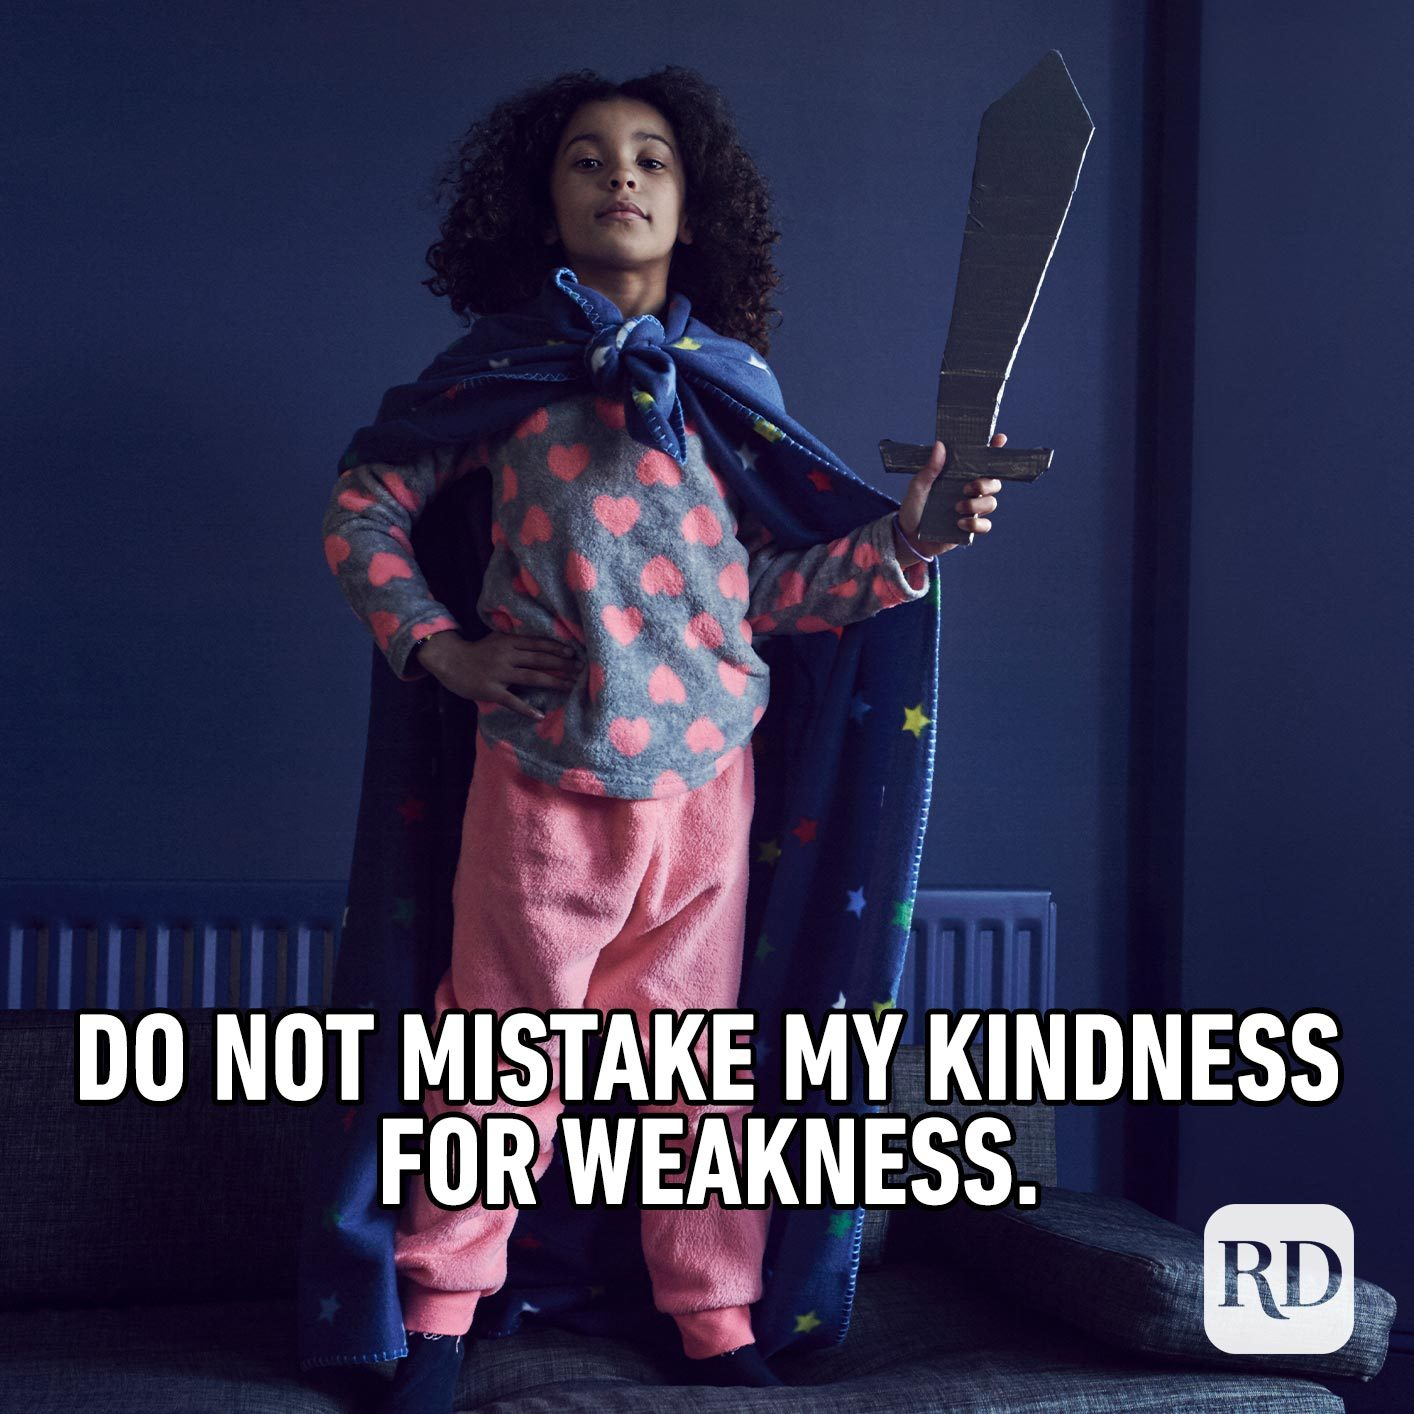 Girl dressed up as superhero. Meme text: Do not mistake my kindness for weakness